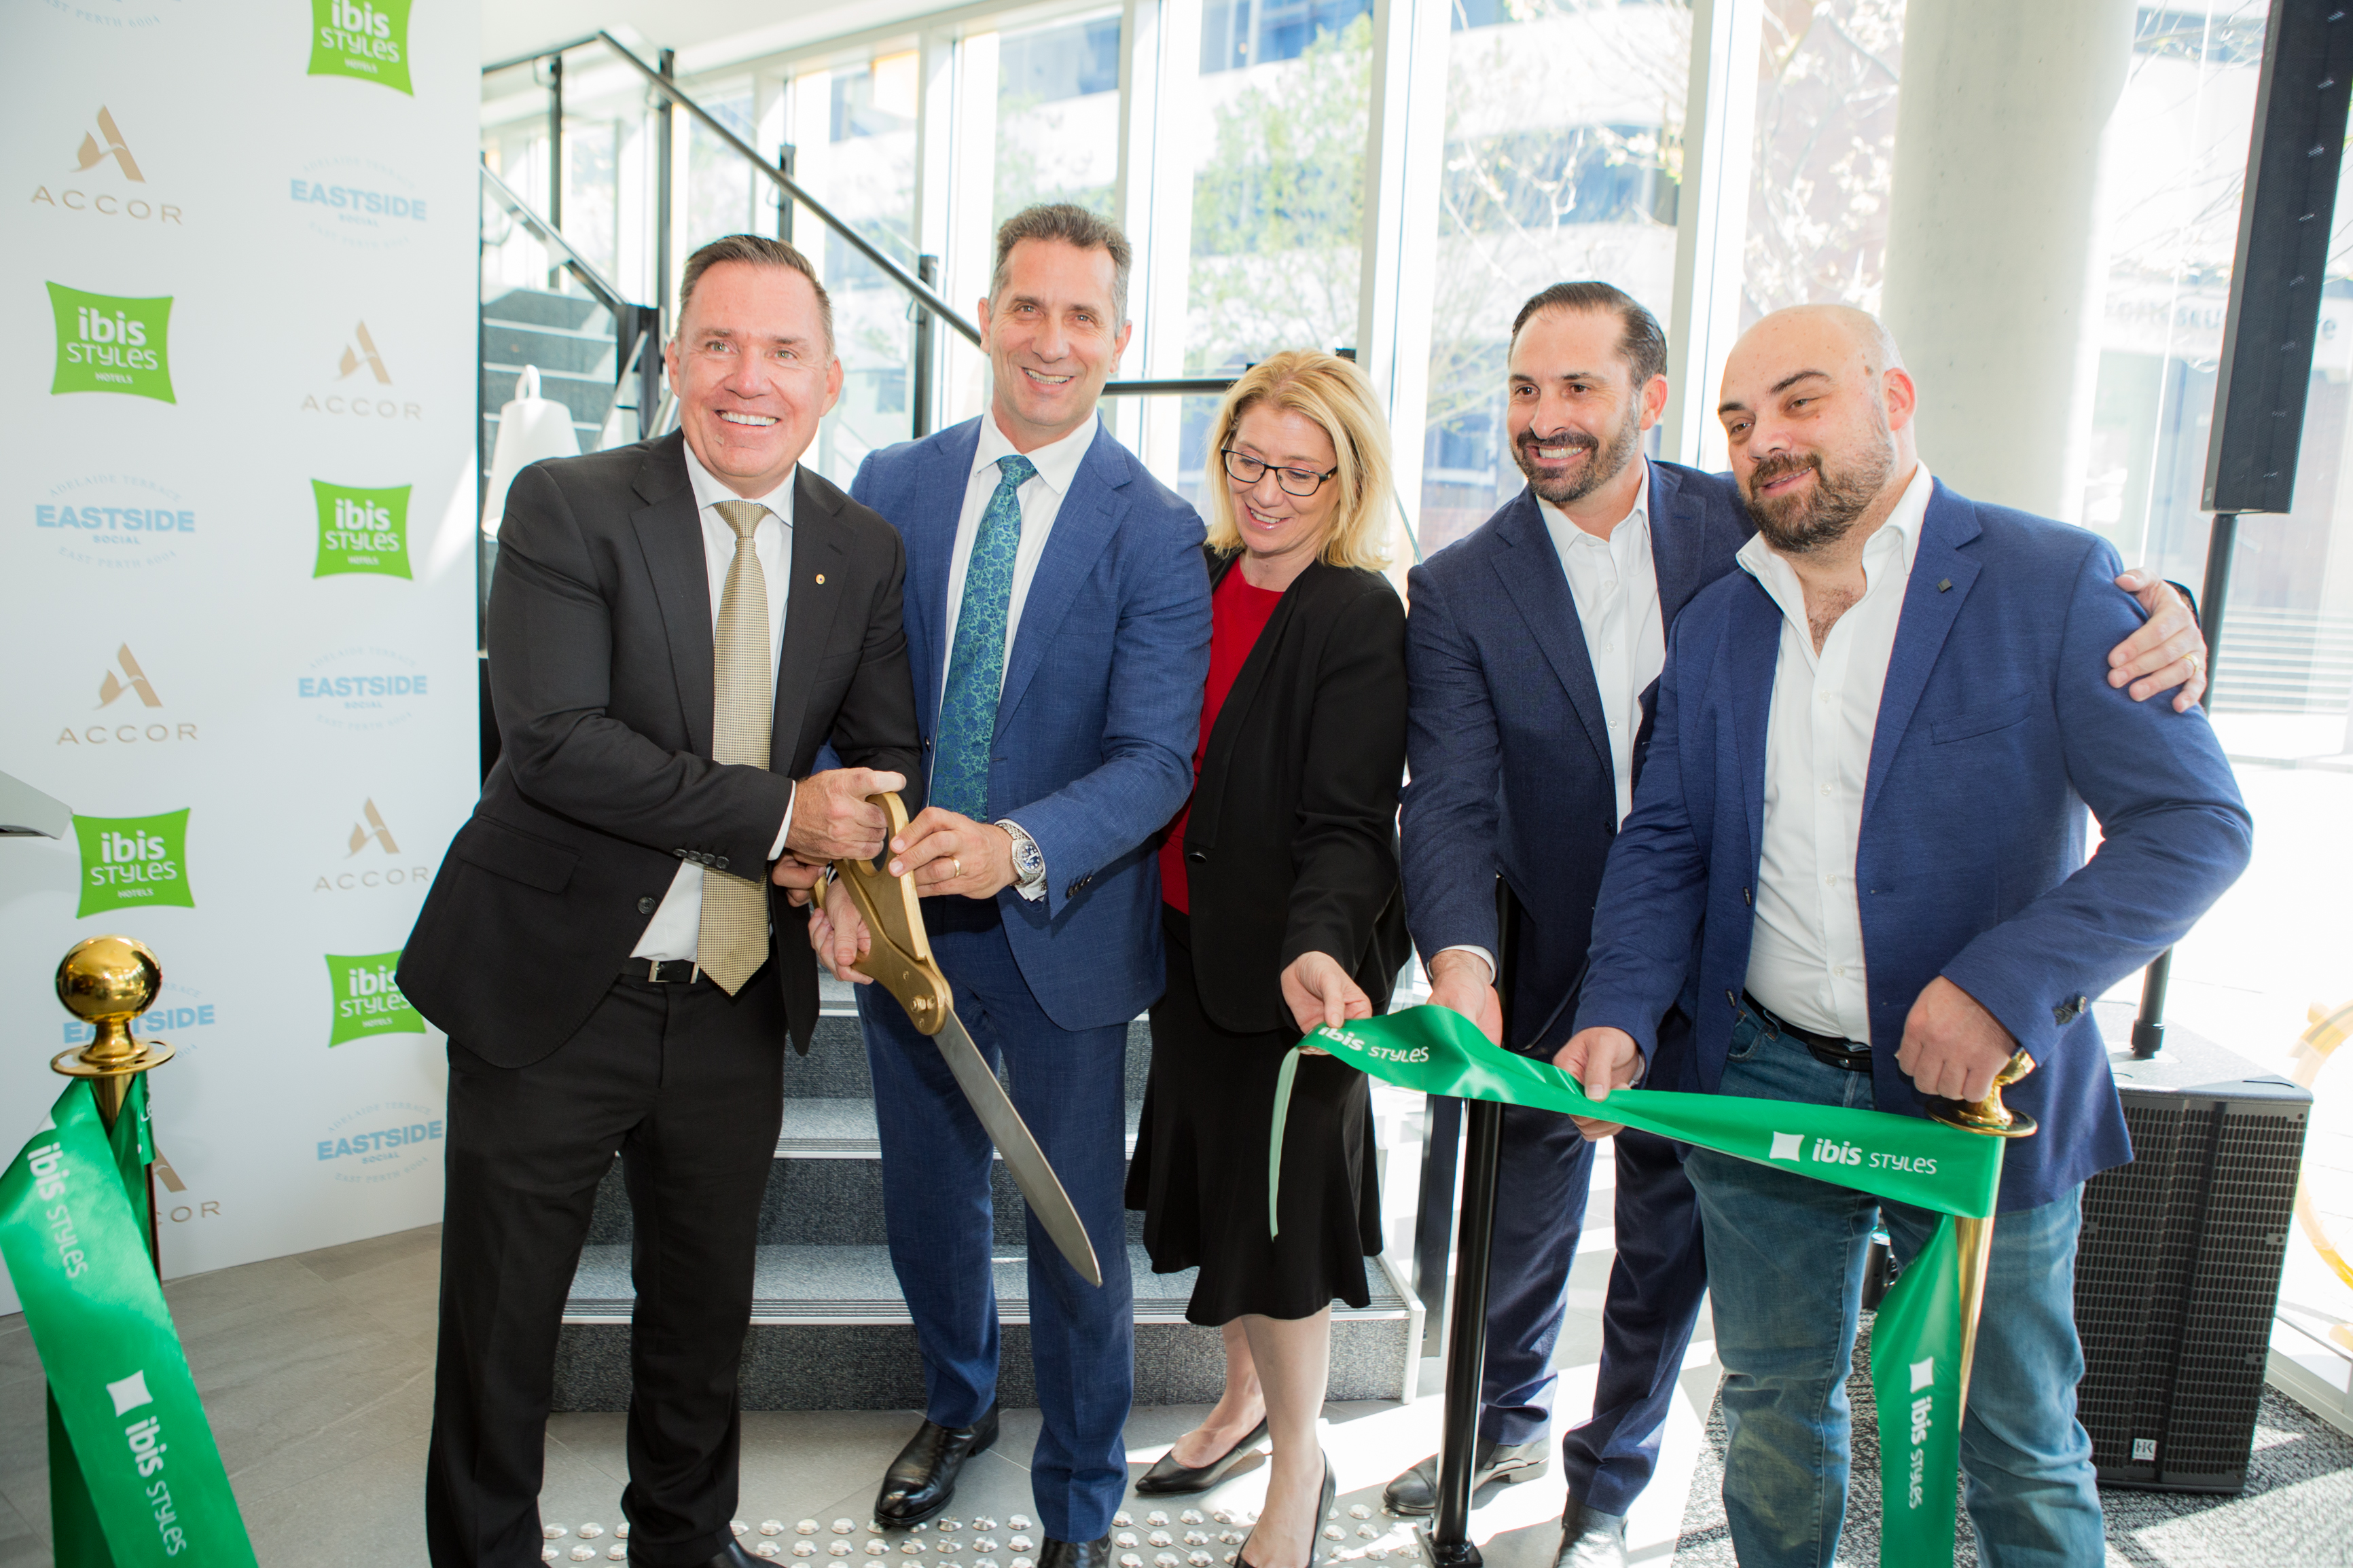 ibis Styles East Perth - ribbon cutting ceremony 23.09.19 HERO